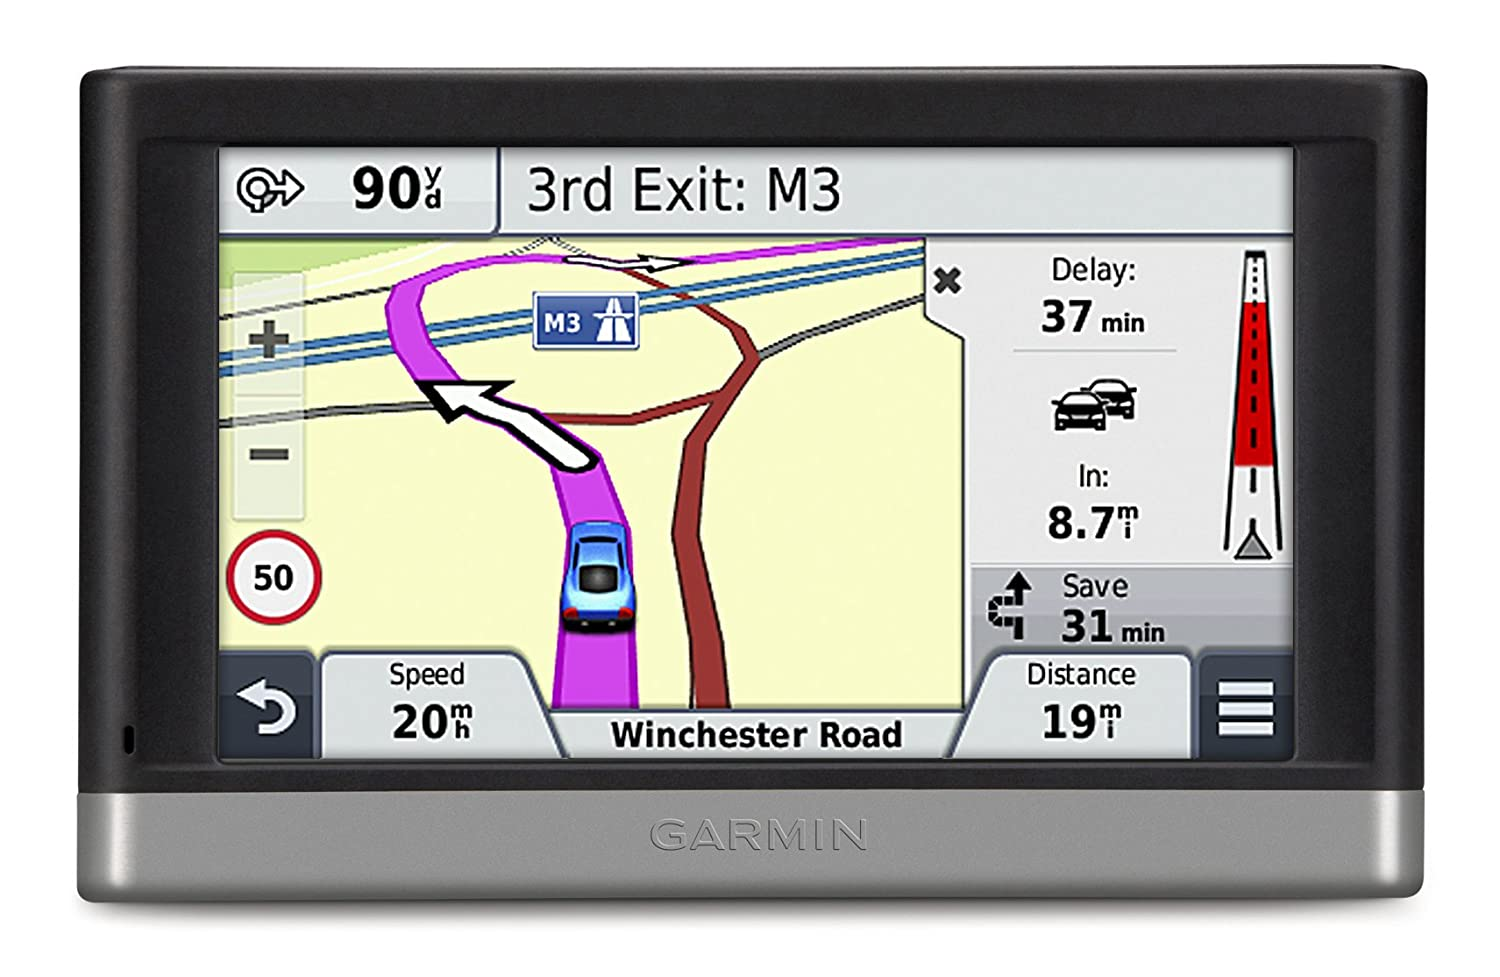 Garmin Nuvi 2468LMT-D 4.3 inch Satellite Navigation with UK and Western Europe Maps, Free Lifetime Map Updates, Free Lifetime Digital Traffic Alerts and Bluetooth 010-01124-29